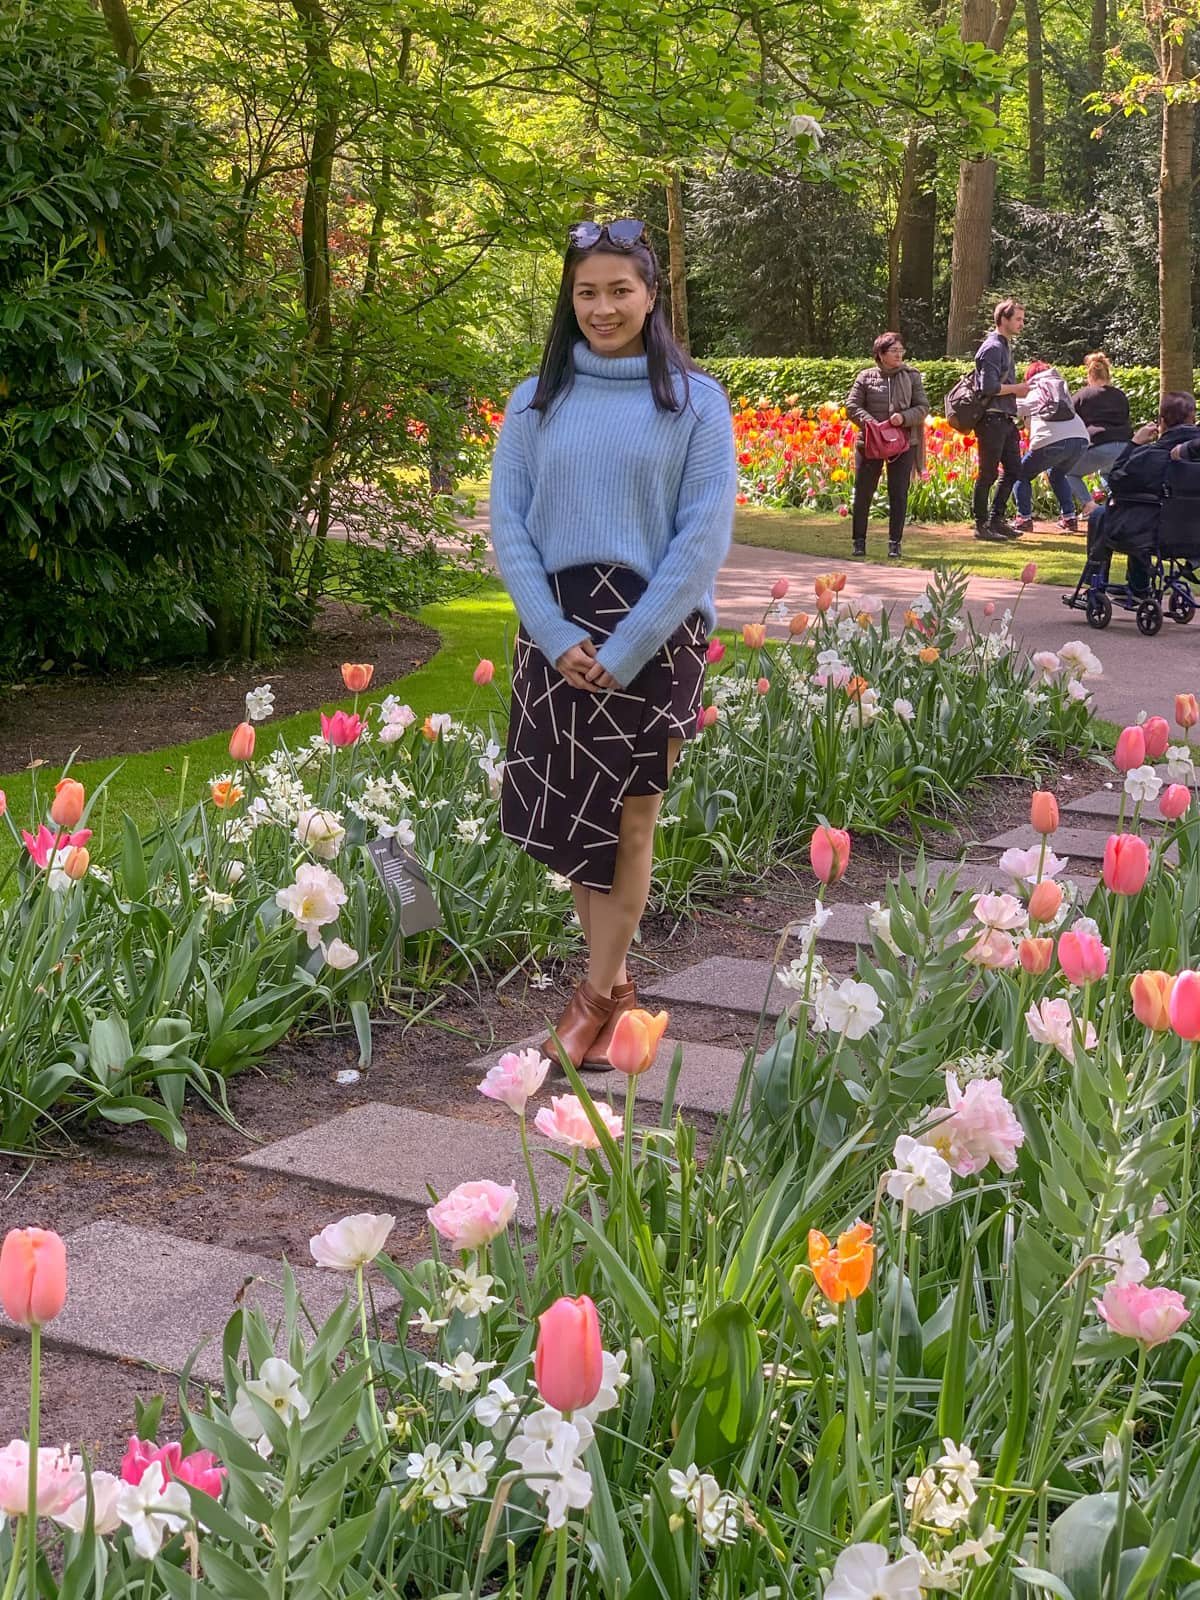 A woman in a light blue sweater and black patterned skirt standing on a square-paved stone path between two rows of tulips that are all pastel pink, orange, and yellow in colour